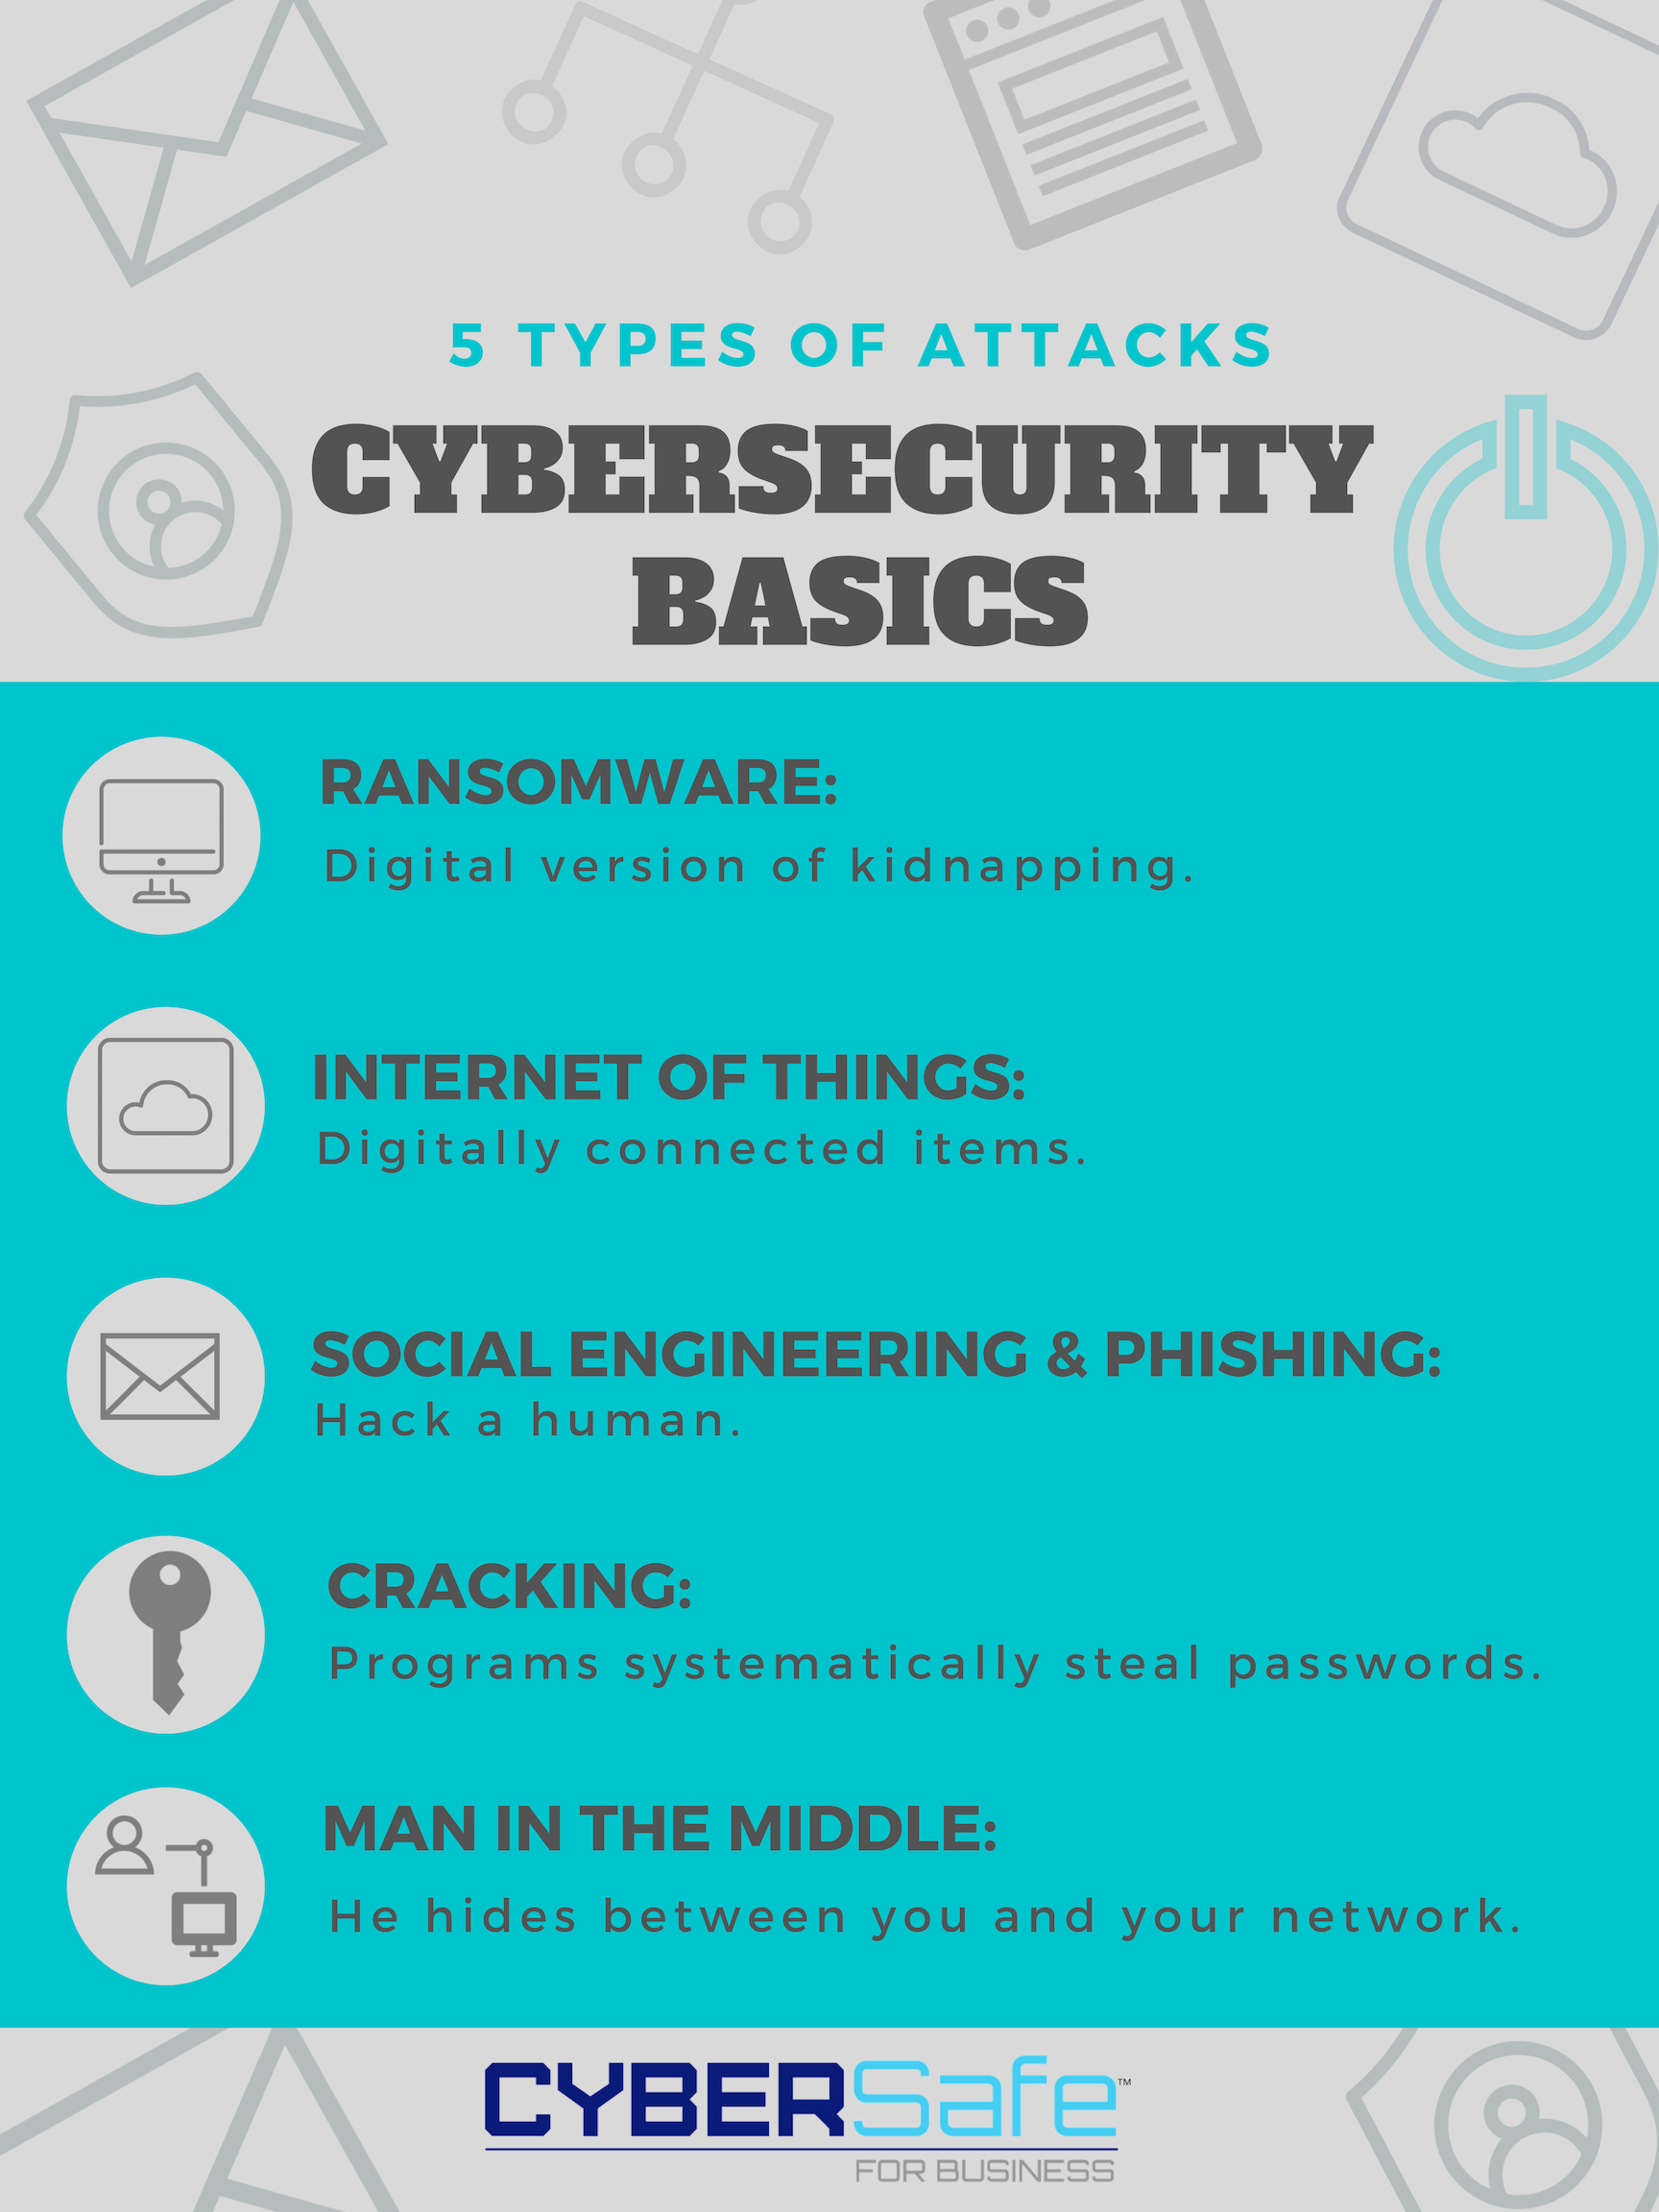 Cyber Security Basics 5 Types Of Attacks Cyber Security Cyber Security Awareness Cyber Attack